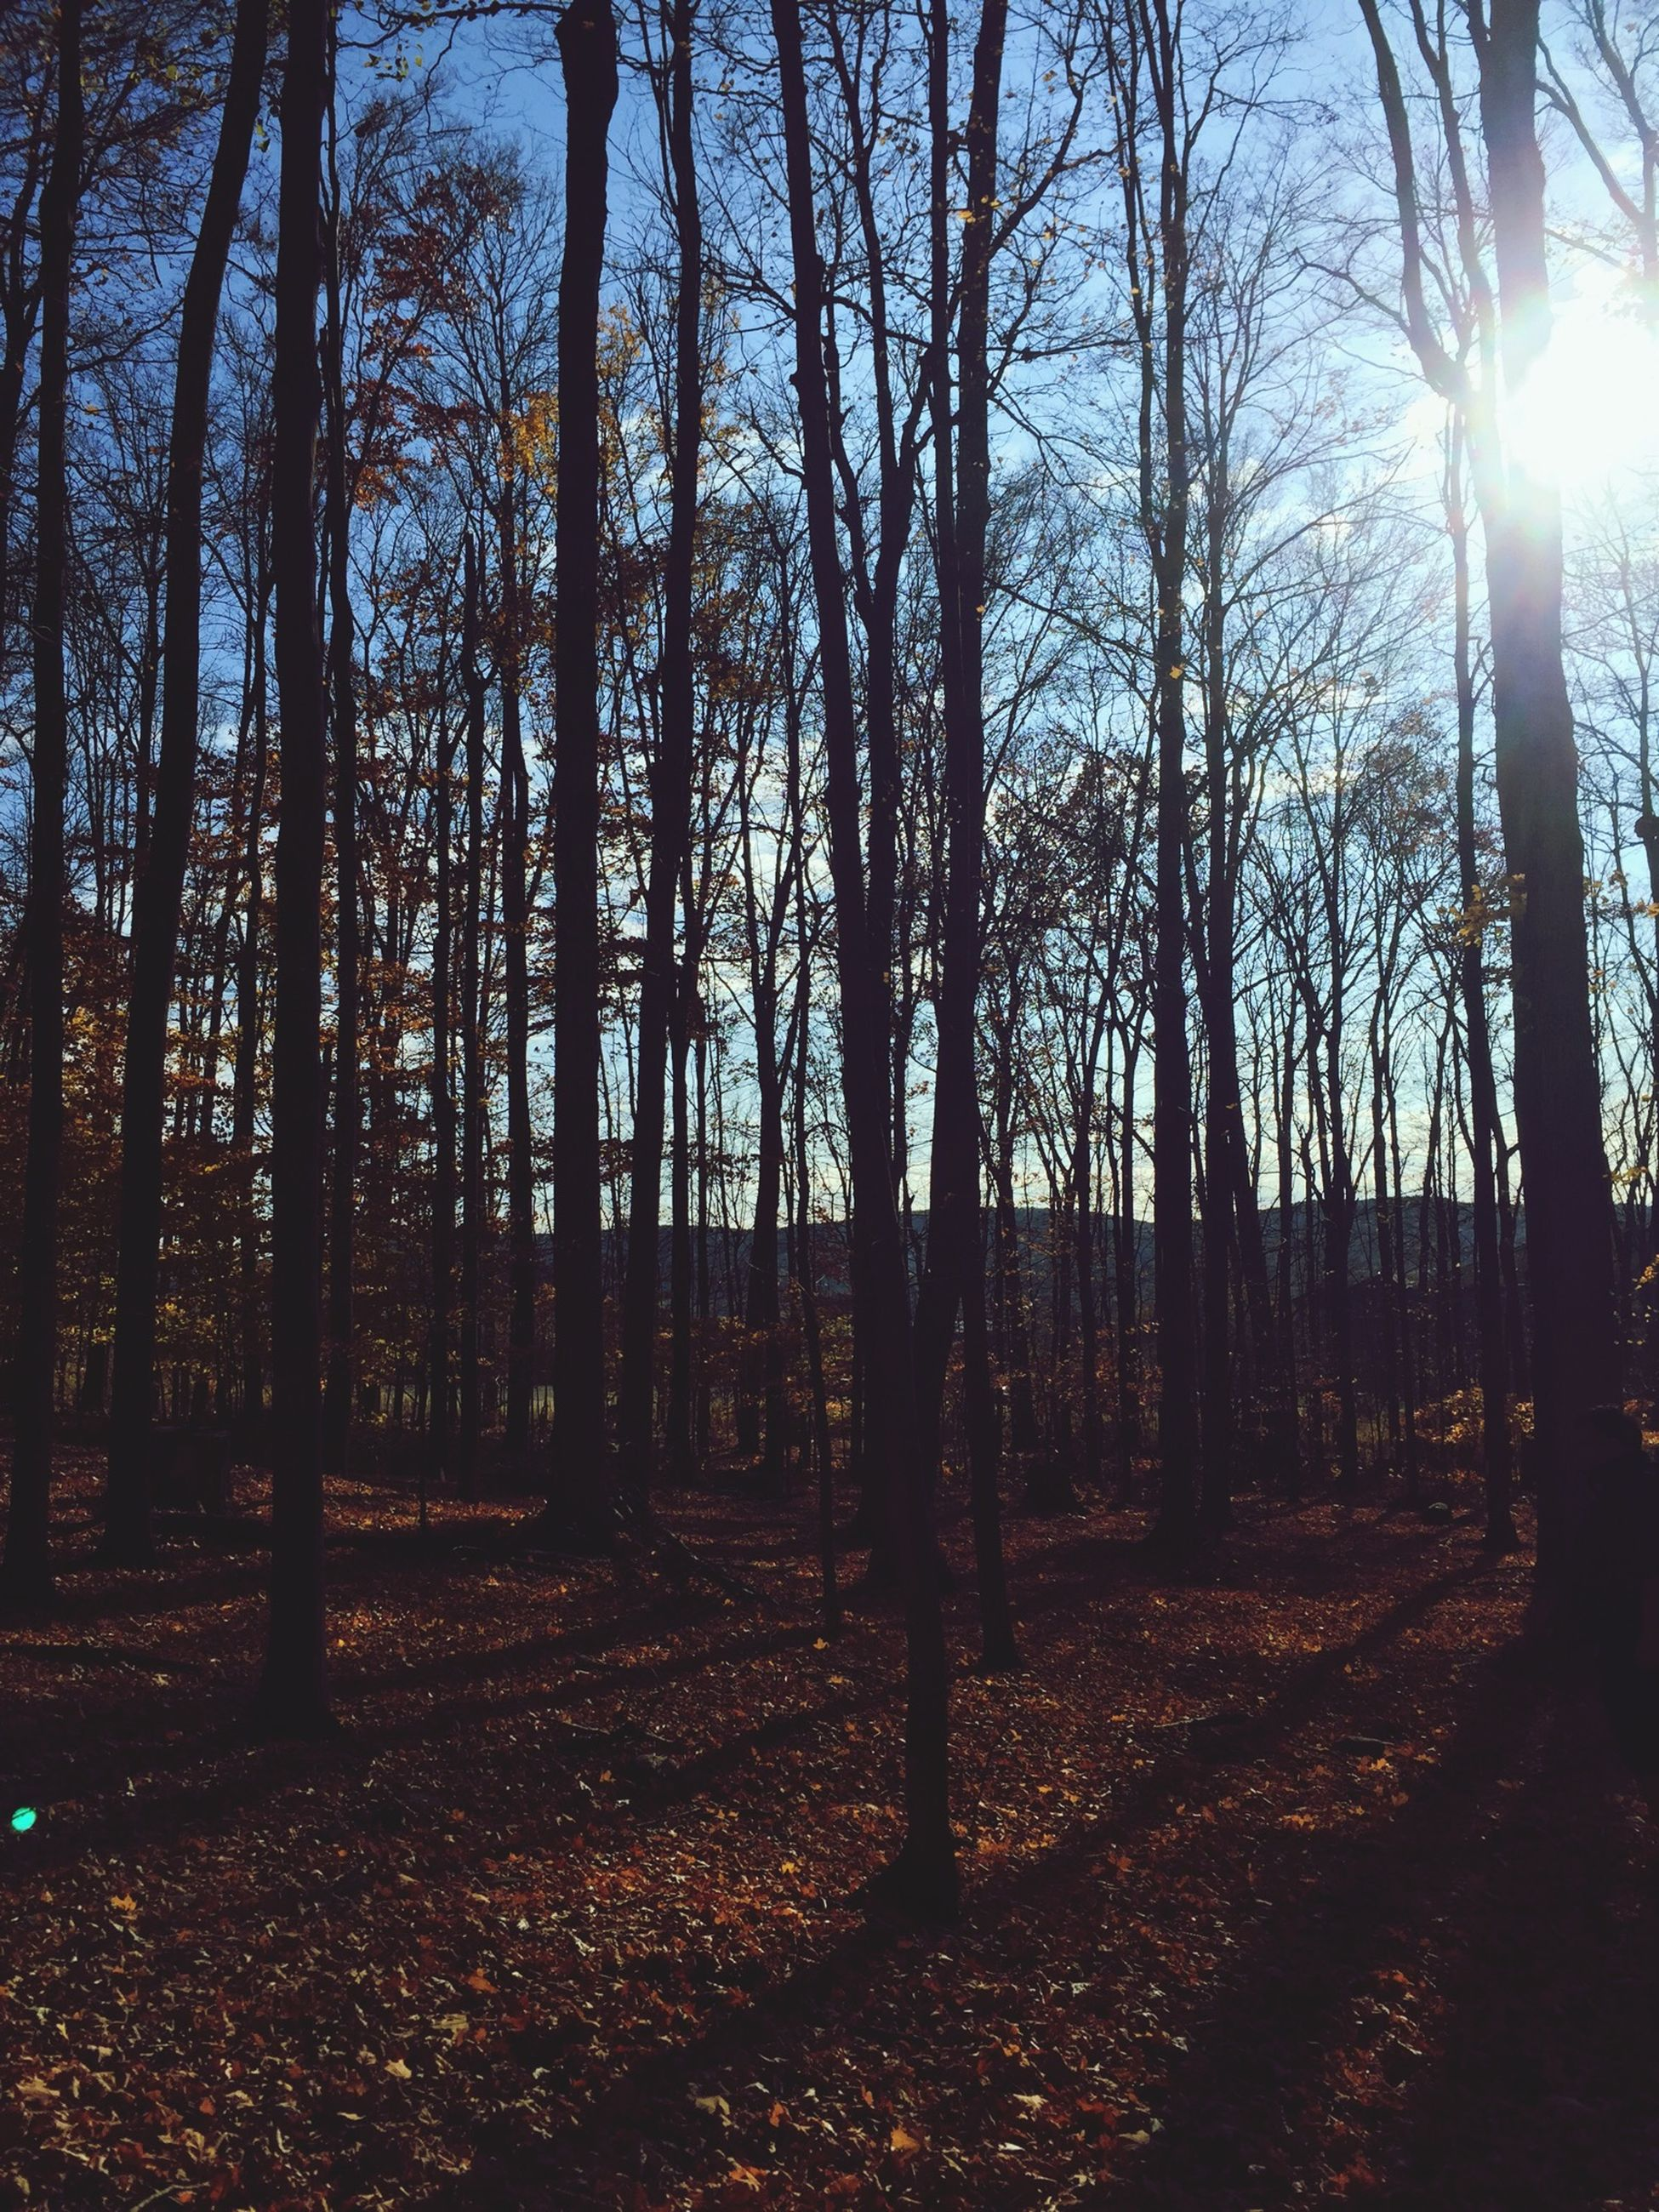 tree, sun, sunbeam, sunlight, tranquility, tree trunk, tranquil scene, nature, lens flare, growth, beauty in nature, scenics, forest, woodland, back lit, landscape, non-urban scene, sunny, branch, field